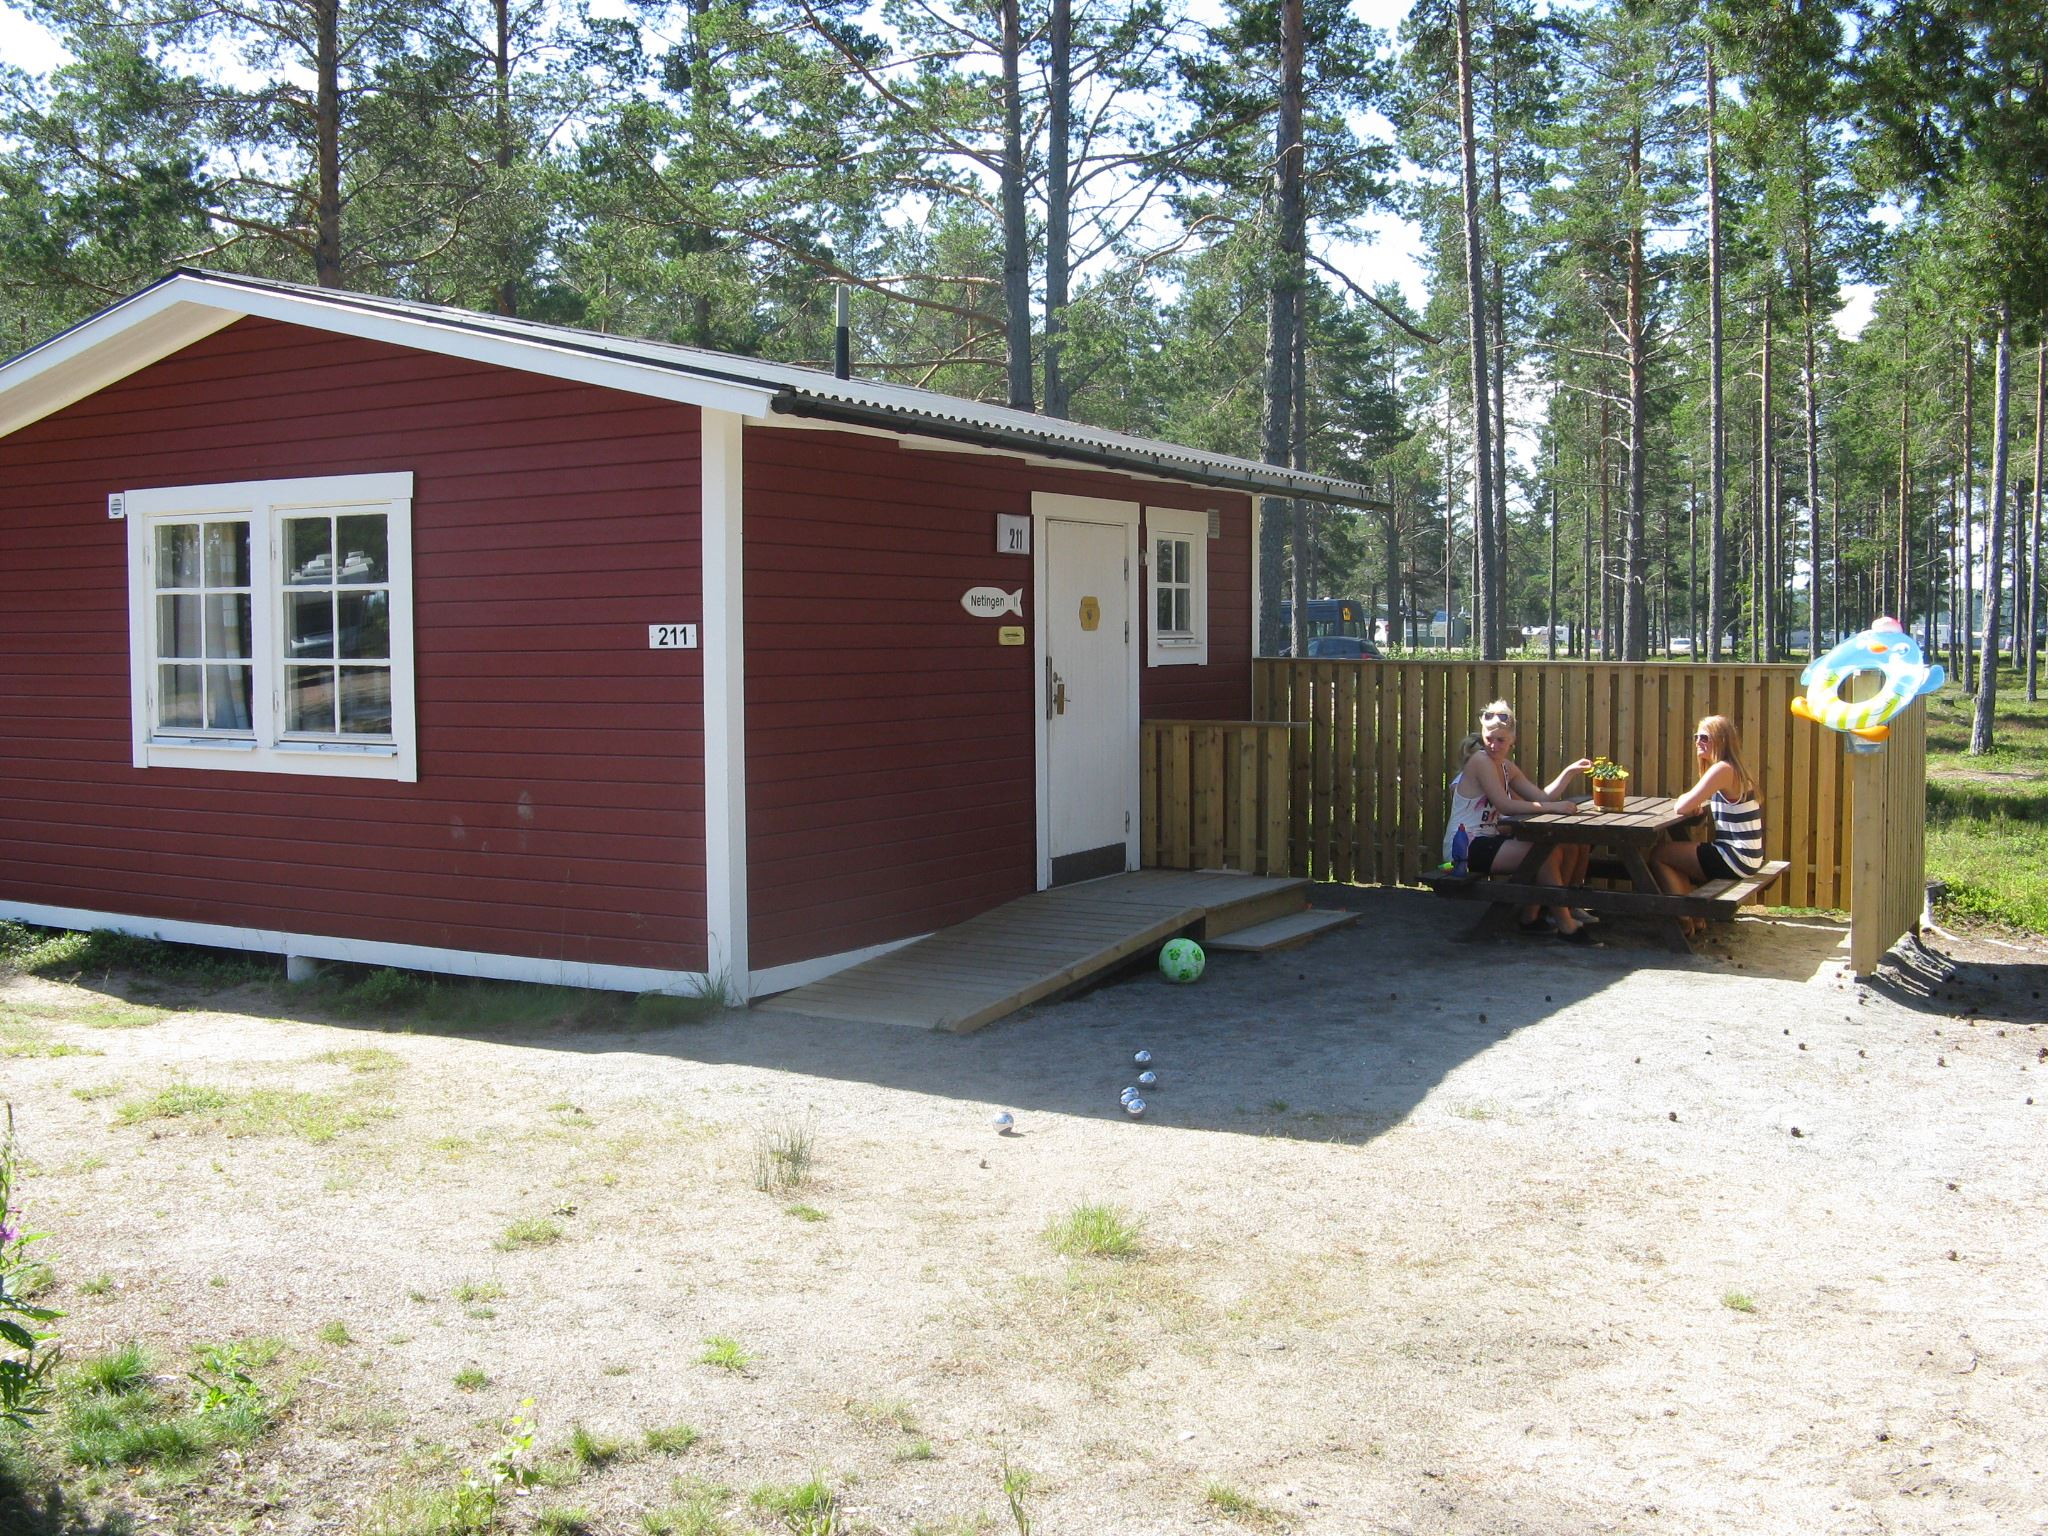 Stenö Havsbad & Camping/Cottages